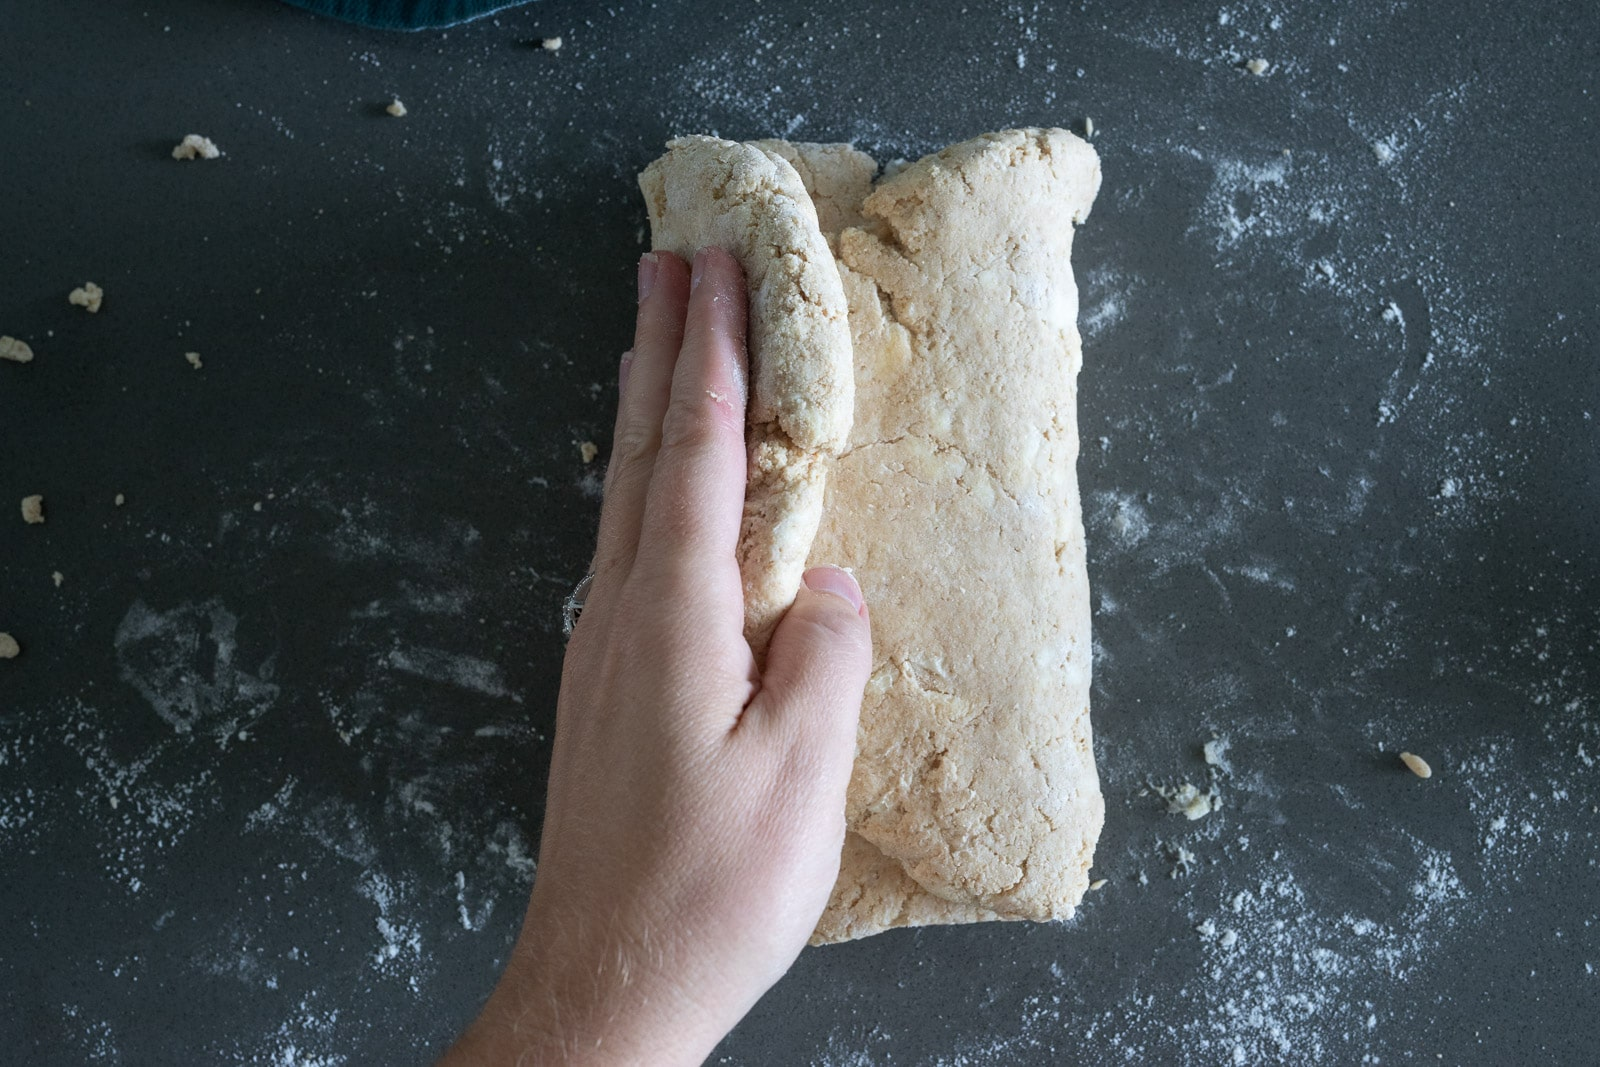 woman folding biscuit dough over to make biscuits.